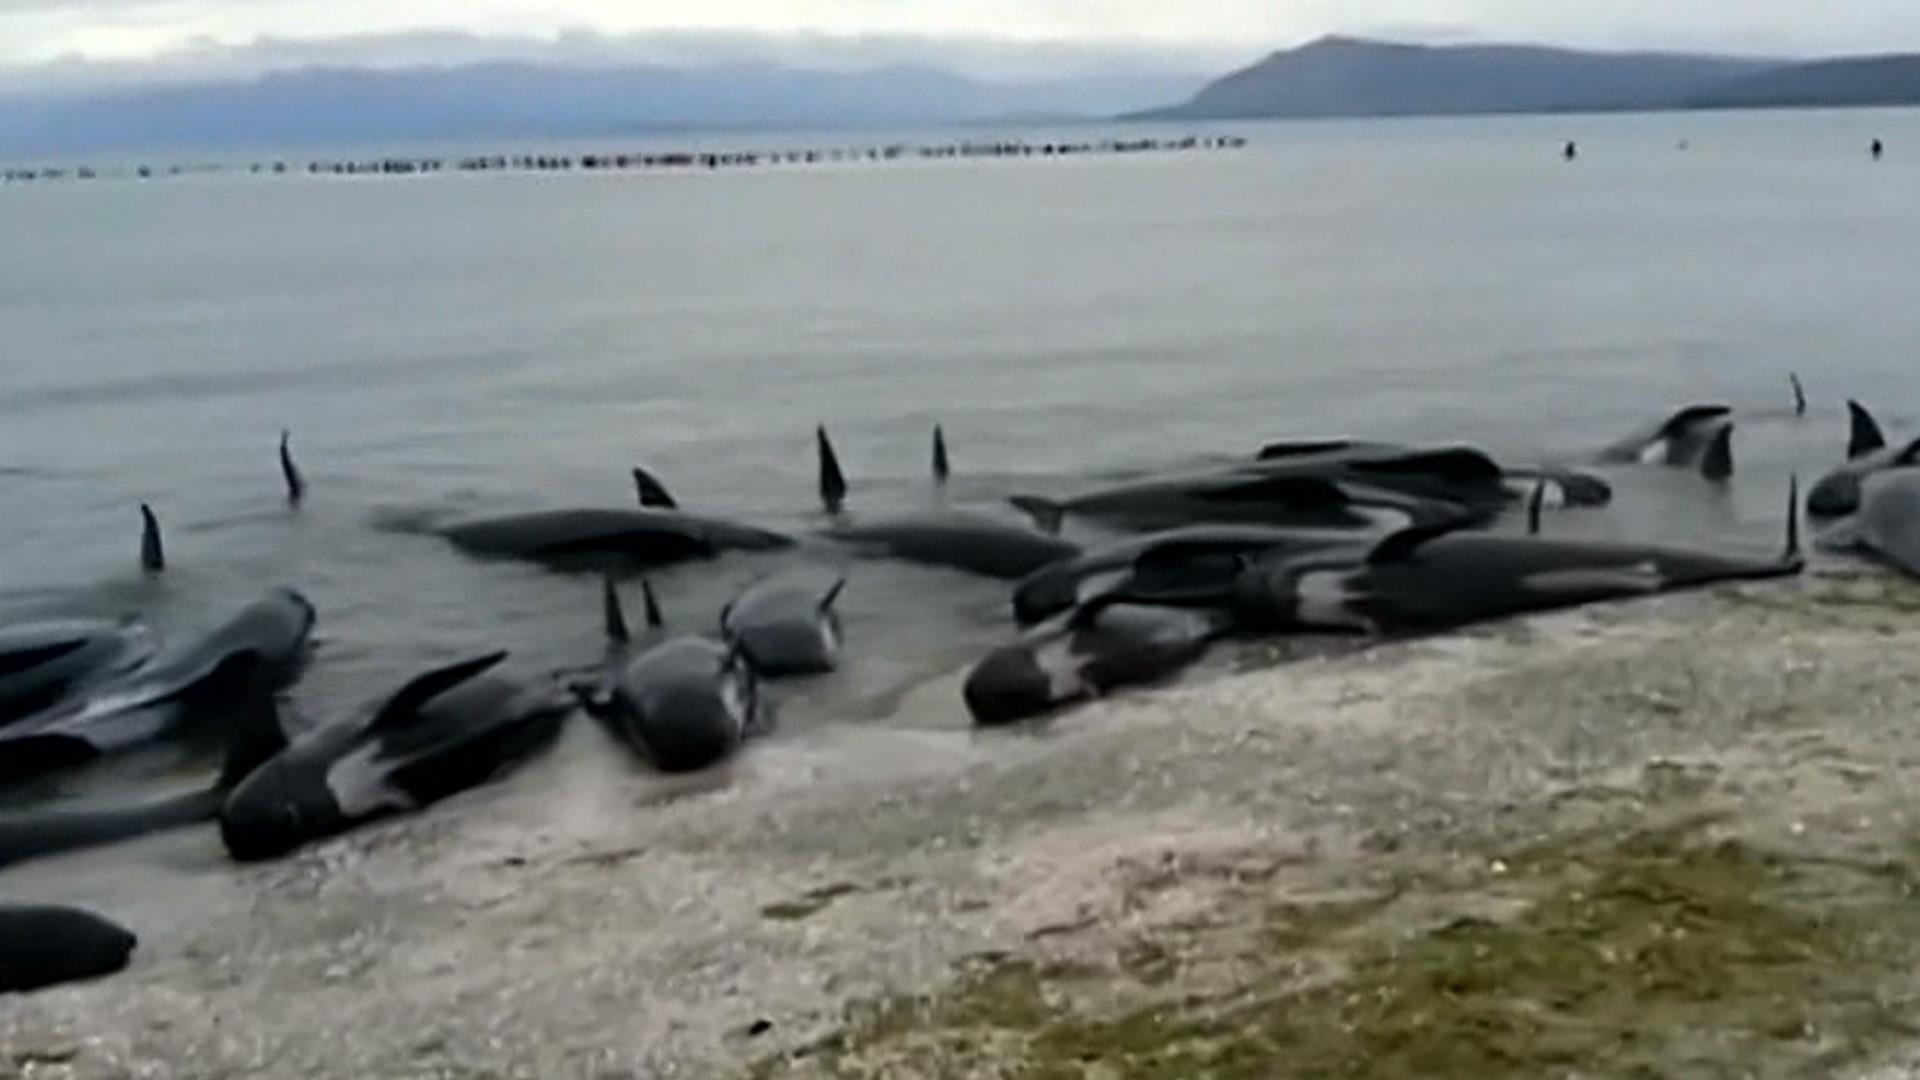 Rescuers Fight To Save Hundreds Of Pilot Whales Beached In New